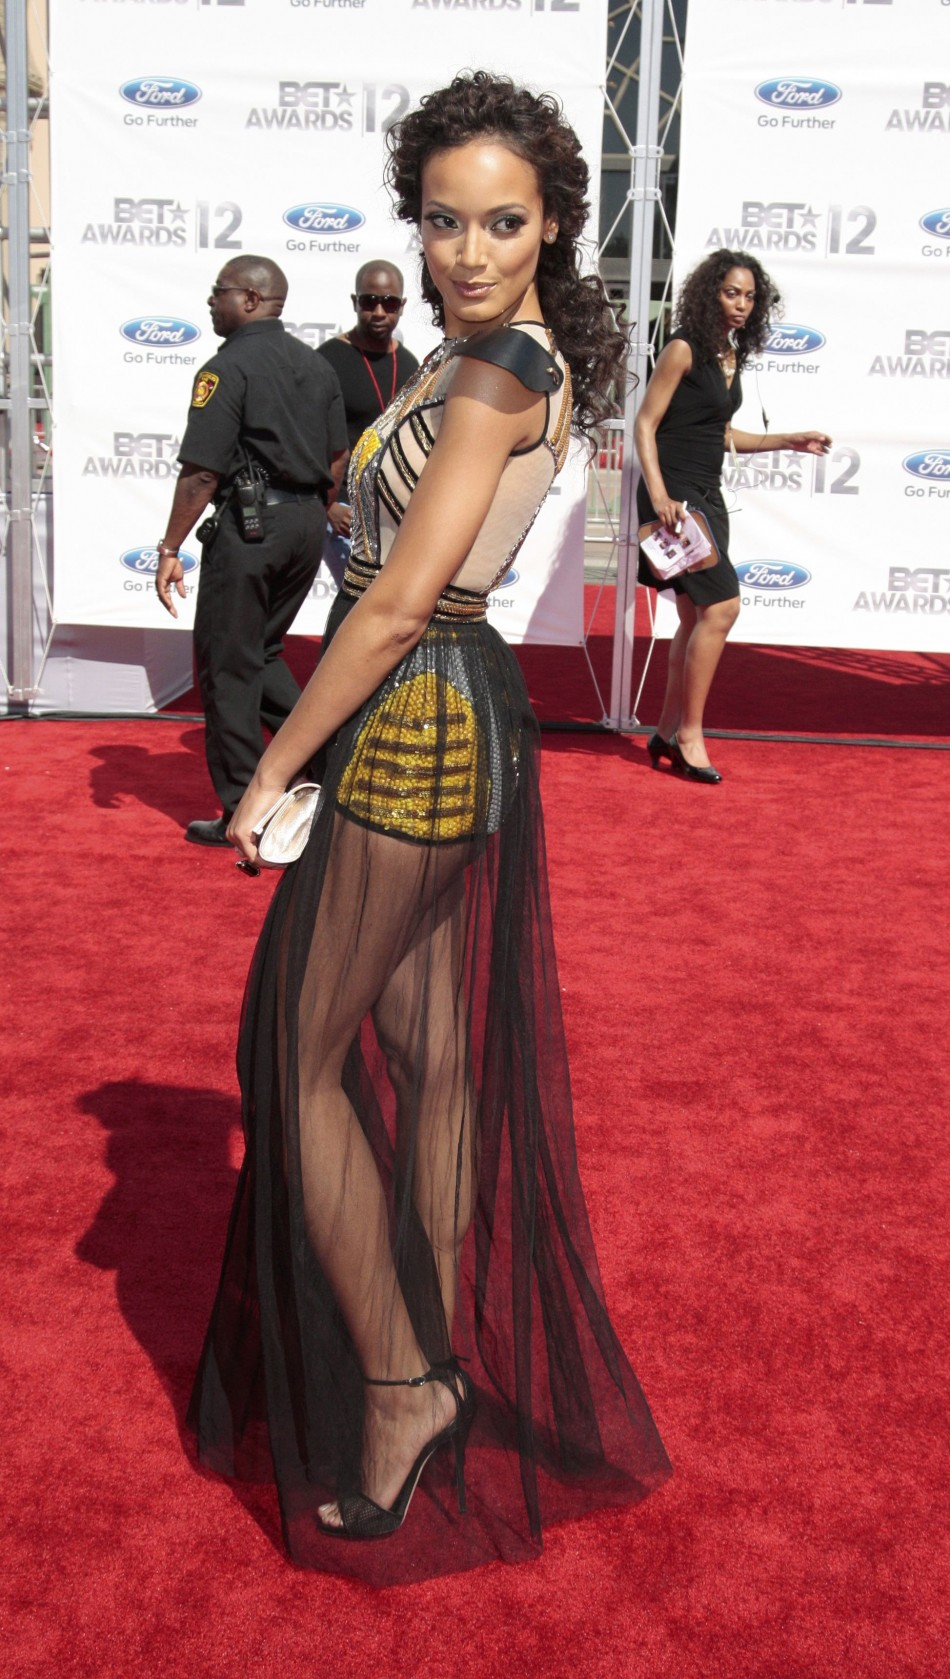 Model Selita Ebanks arrives at the 2012 BET Awards in Los Angeles